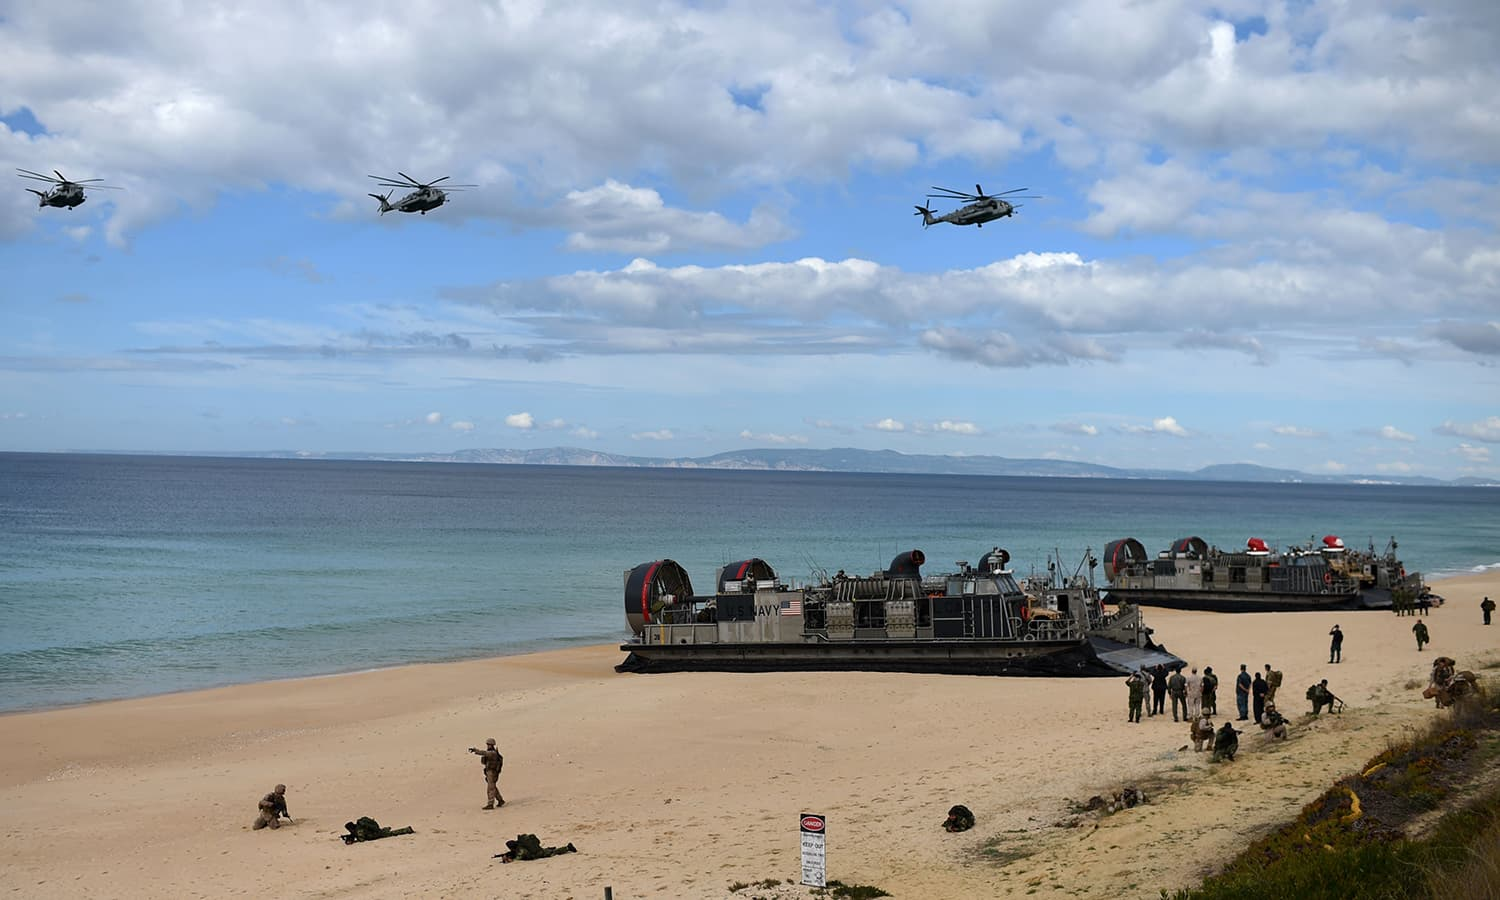 US navy helicopters fly over as US marines prepare to disembark from the hovercrafts deployed by the USS Arlington amphibious transport dock. — AFP